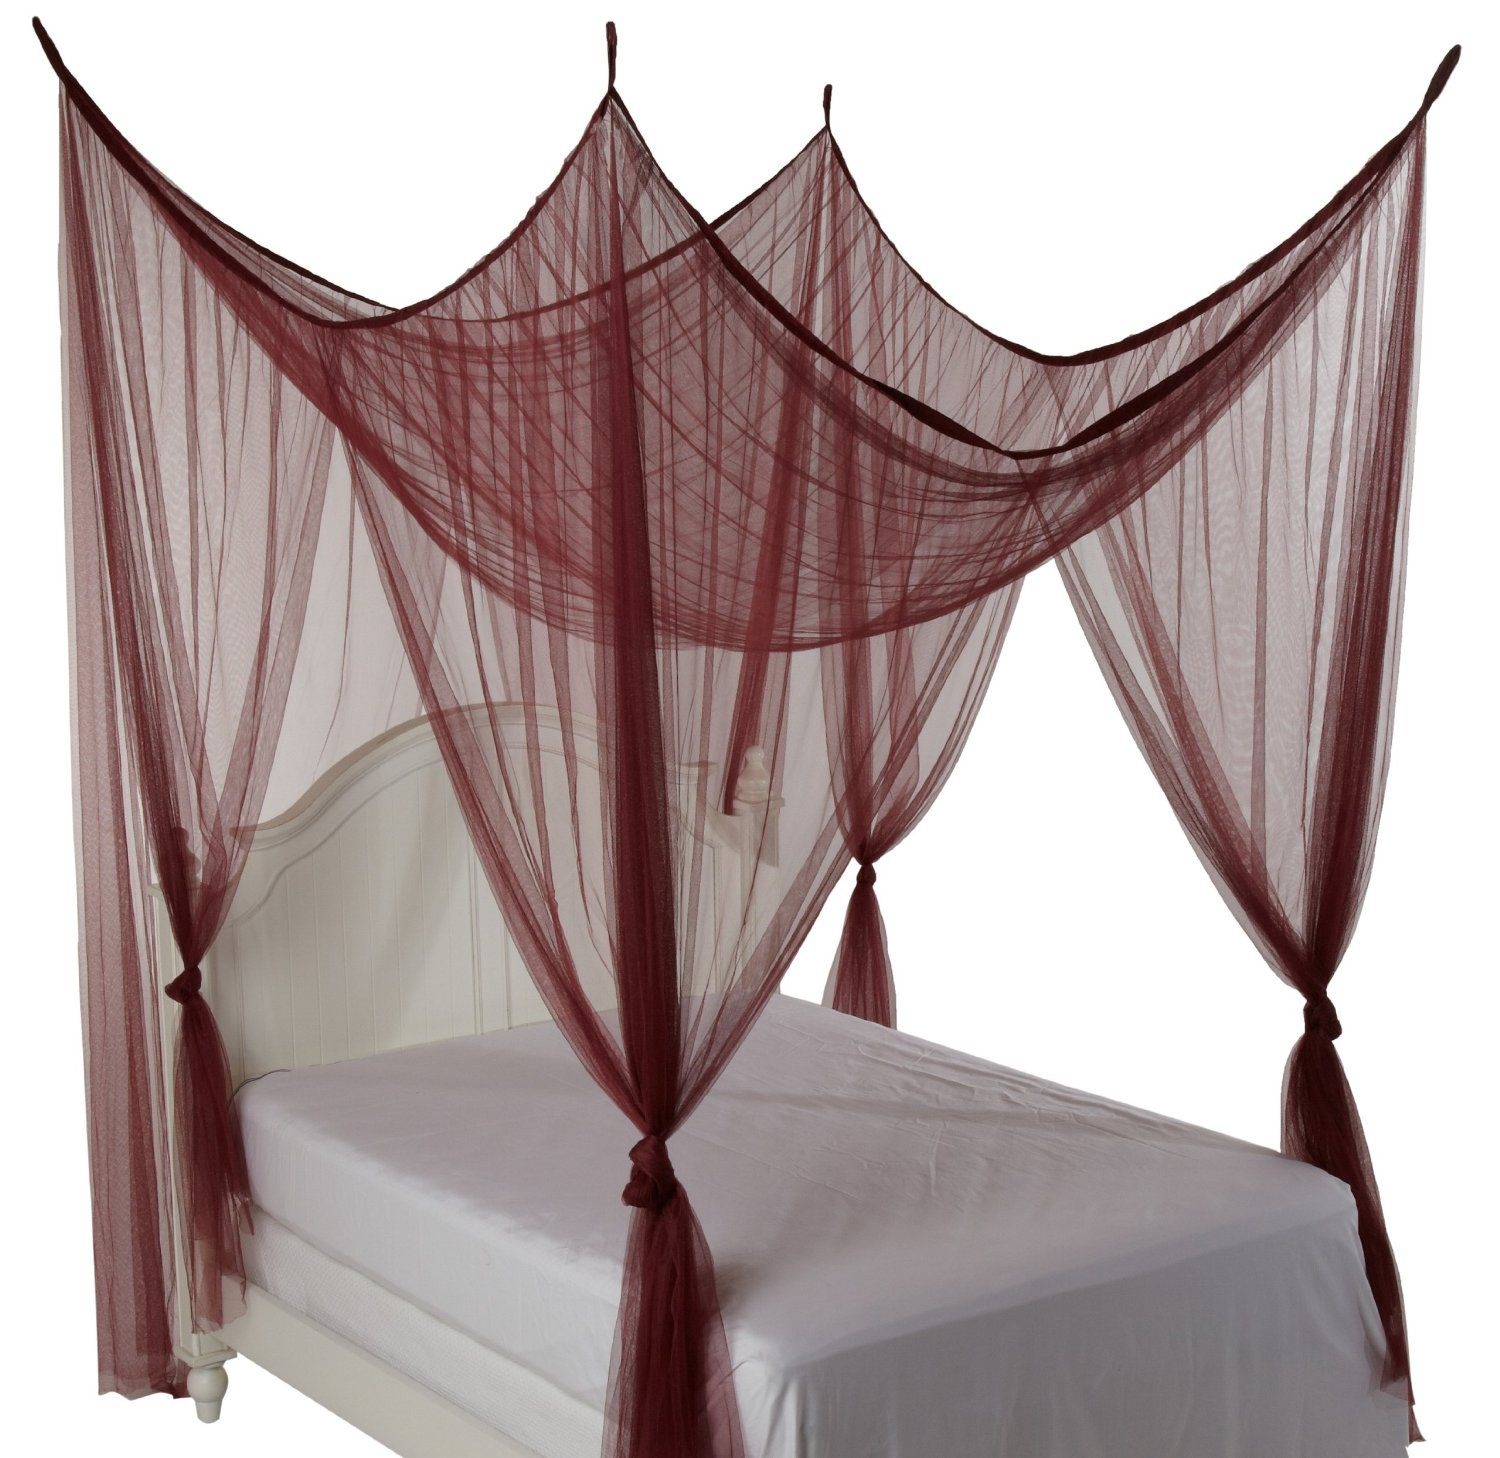 4 Post Bed Curtains simple four poster bed canopy drapes with burgundy color 4 poster